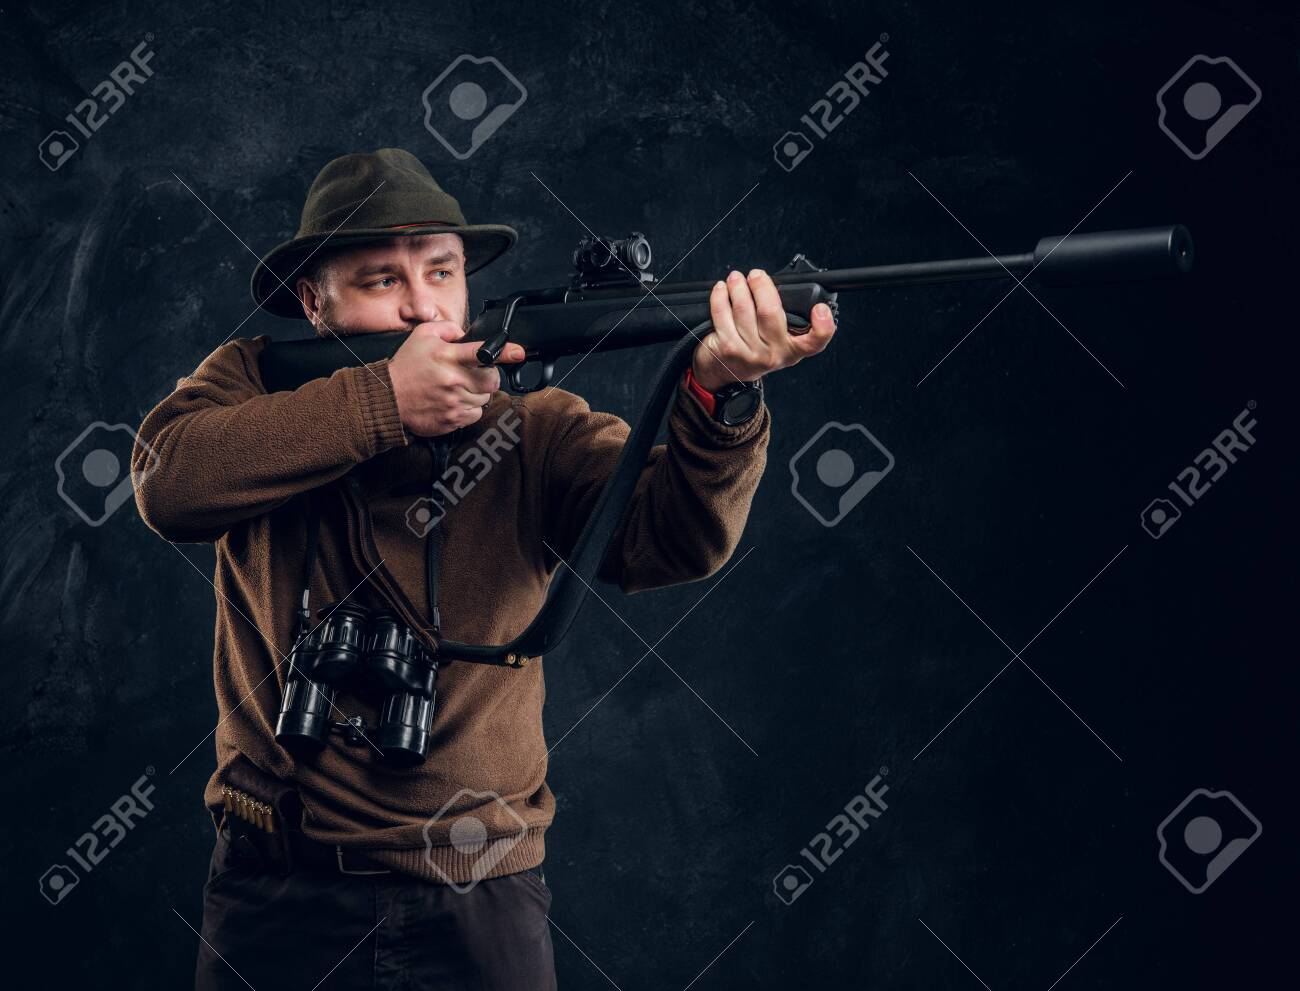 Male hunter holding a rifle and aiming at his target or prey